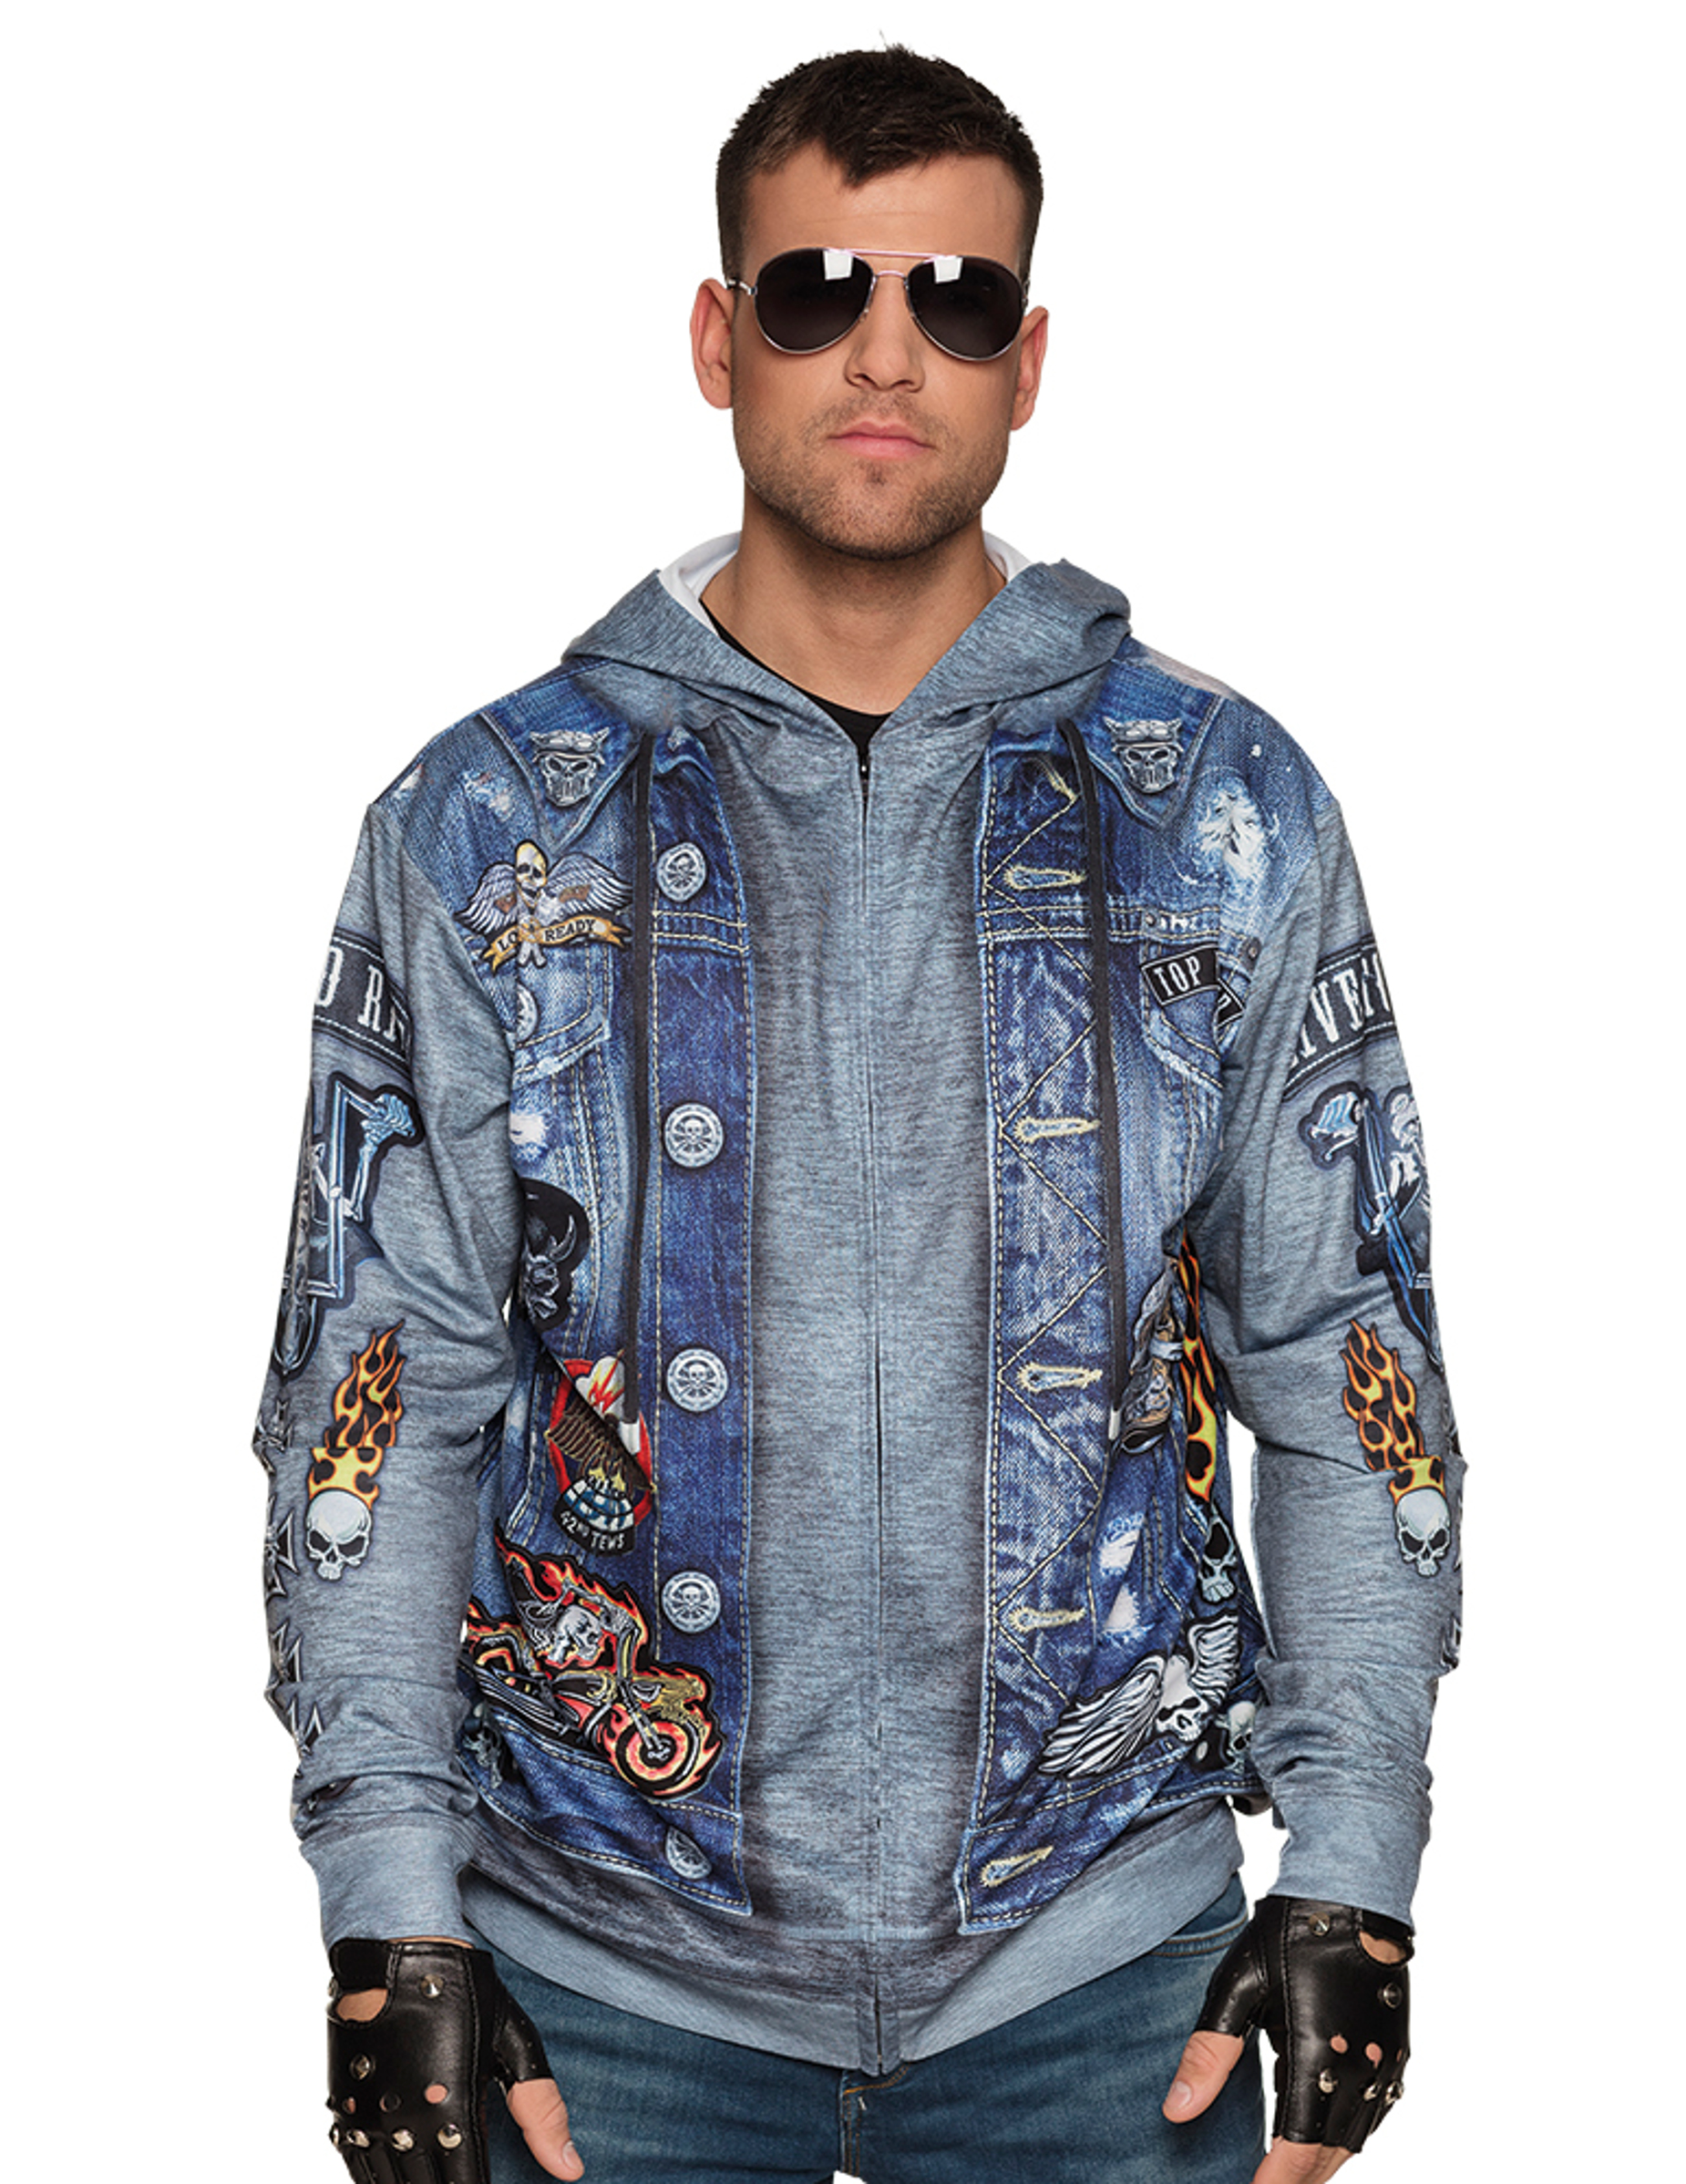 biker hoodie f r m nner rockerkost m oberteil blau g nstige faschings kost me bei karneval. Black Bedroom Furniture Sets. Home Design Ideas